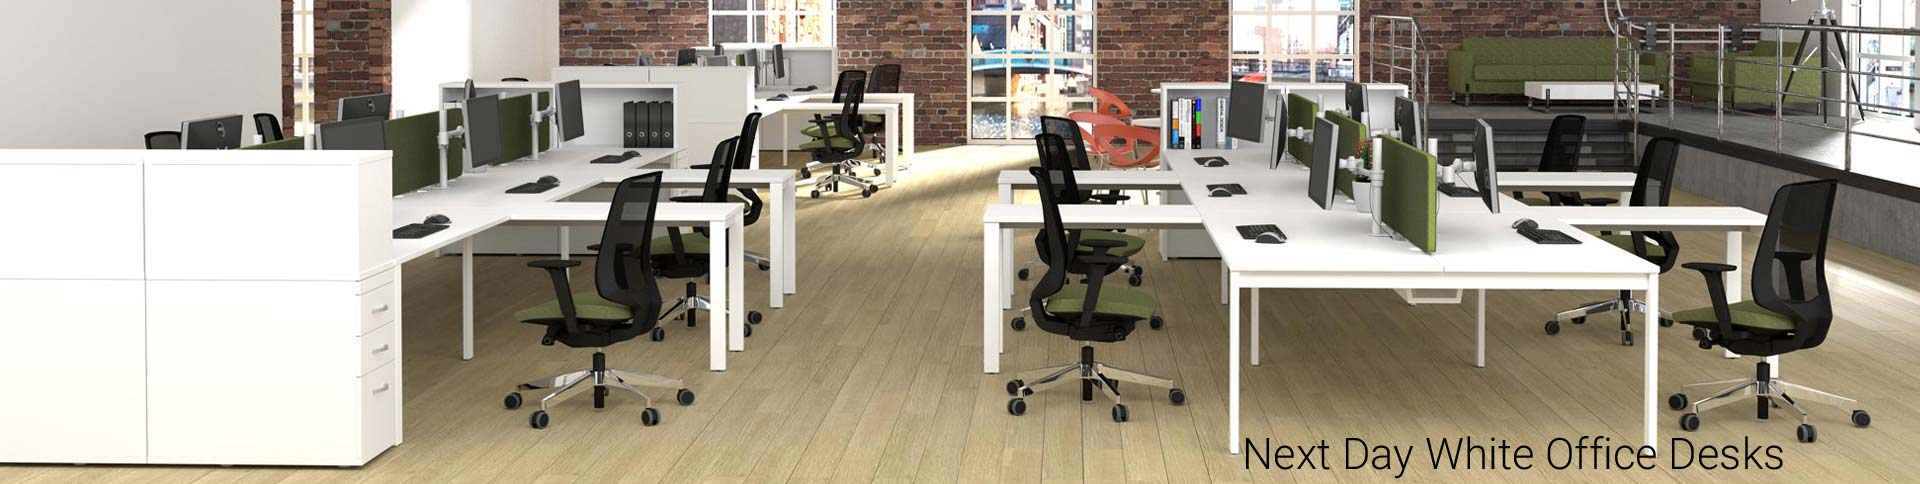 Andrews Office Furniture Office Furniture Desks Chairs